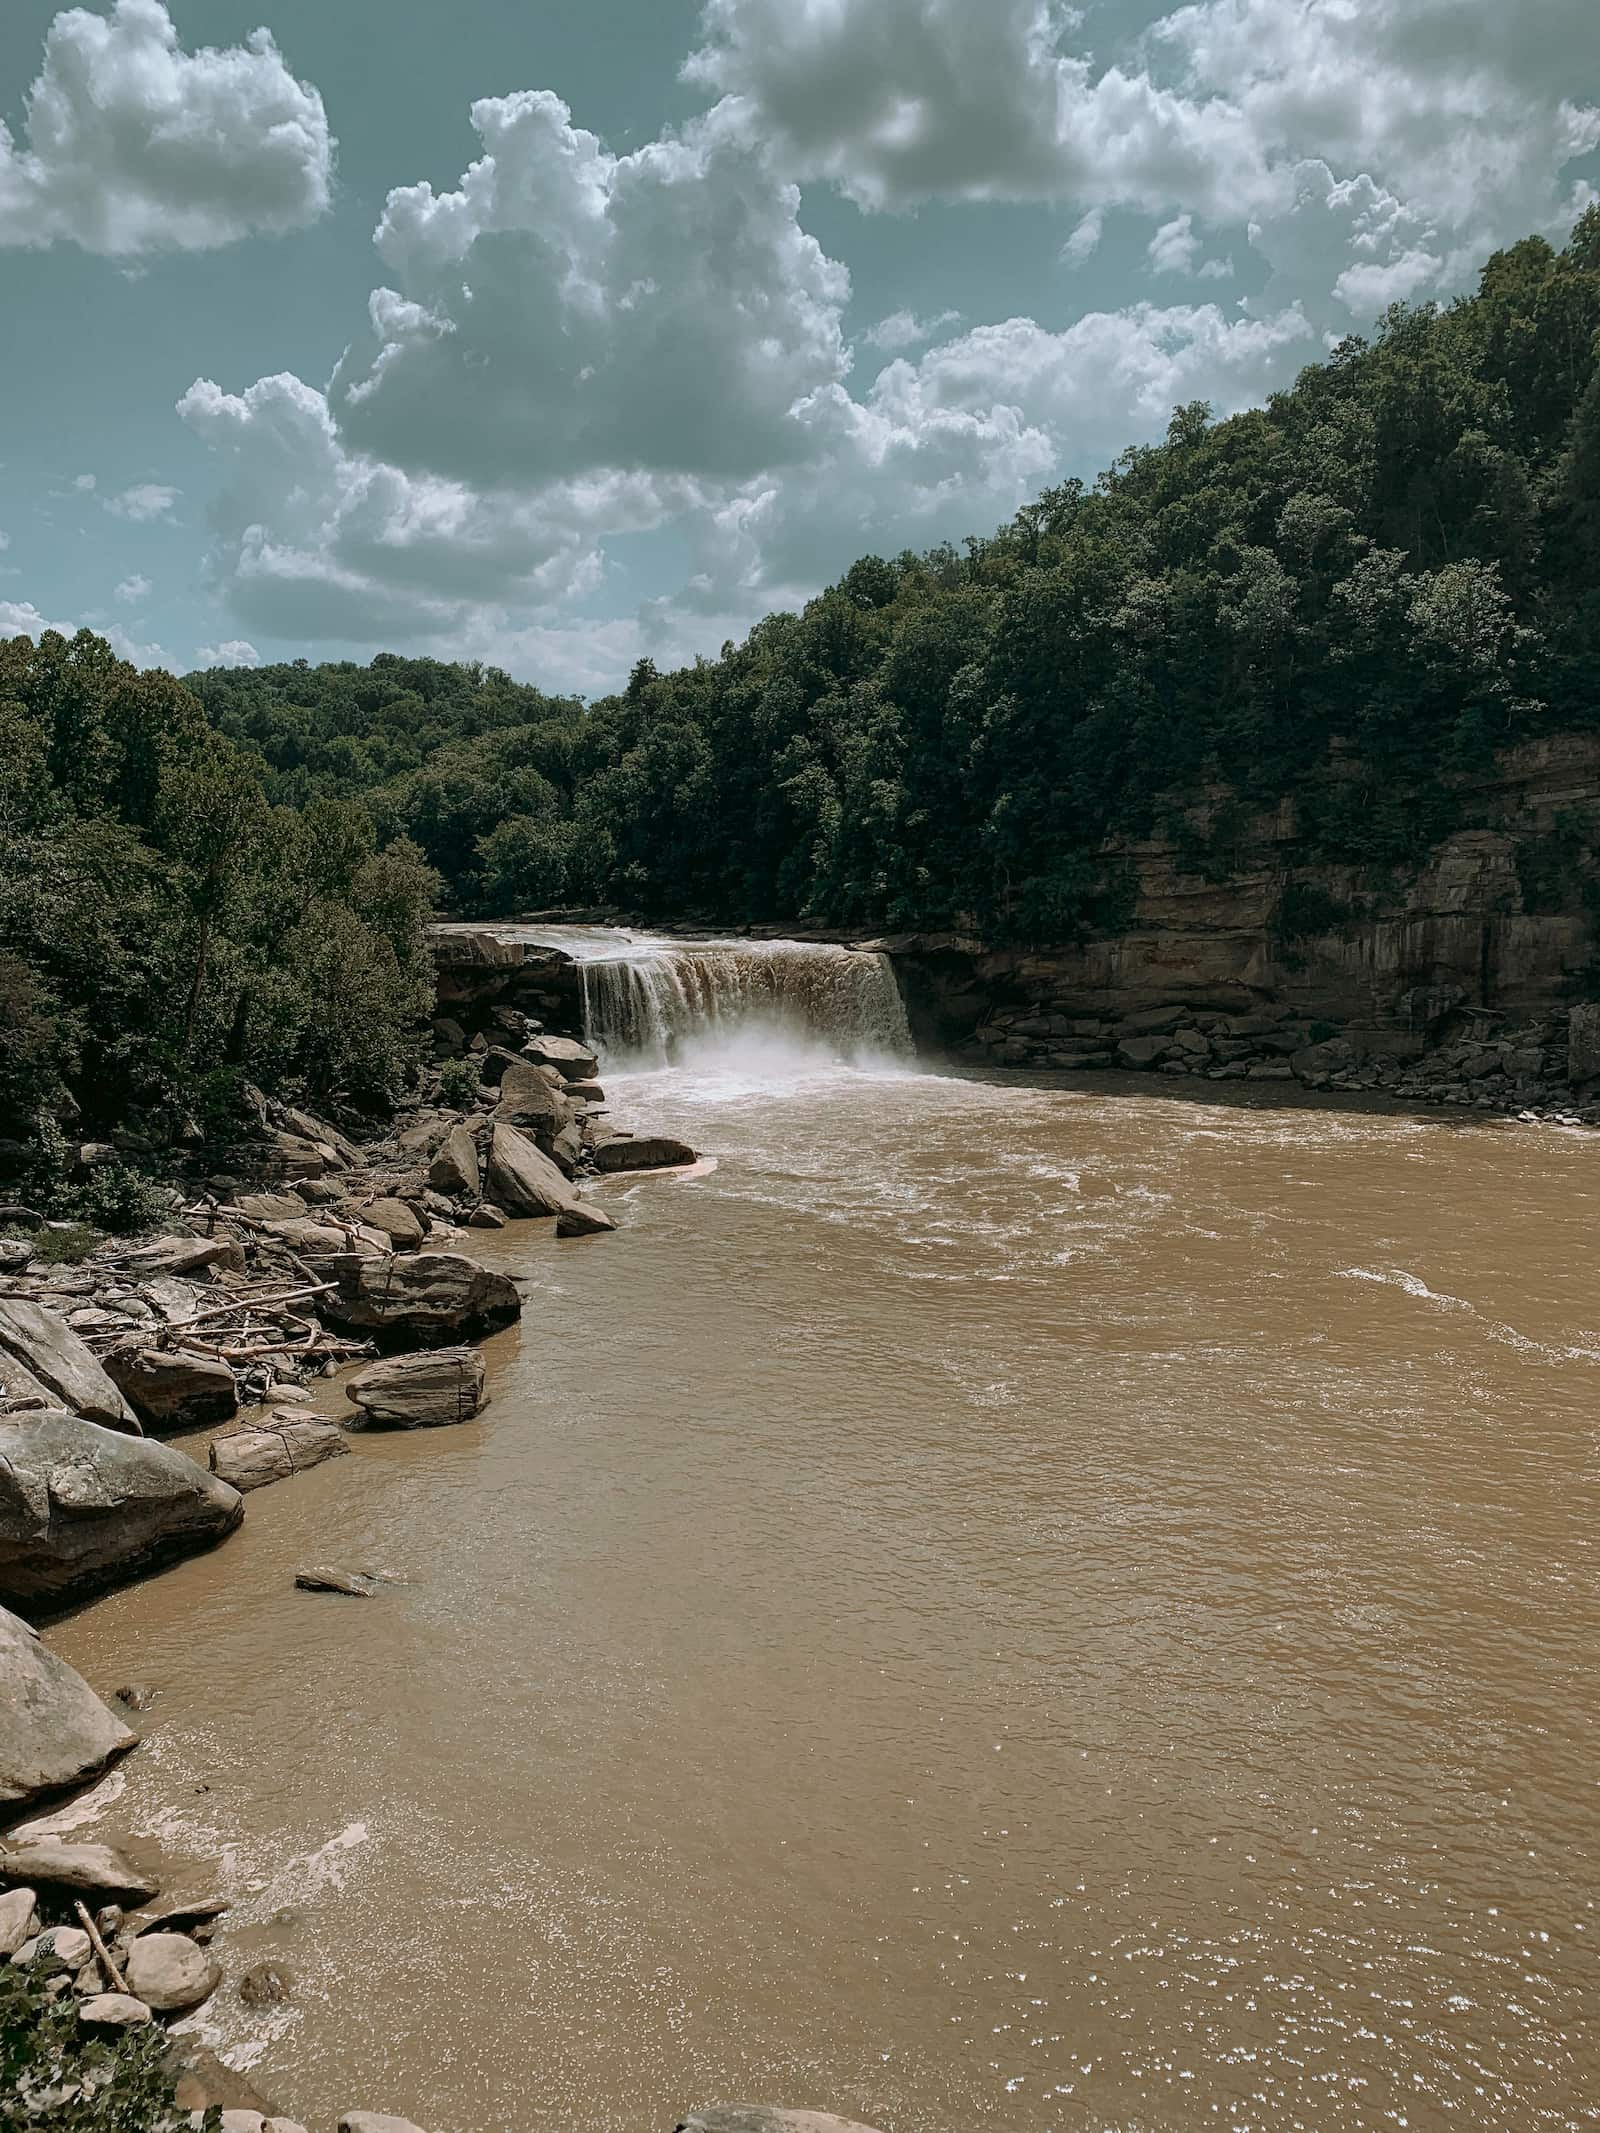 Waterfall pouring over muddy water under a cloudy bright blue sky.